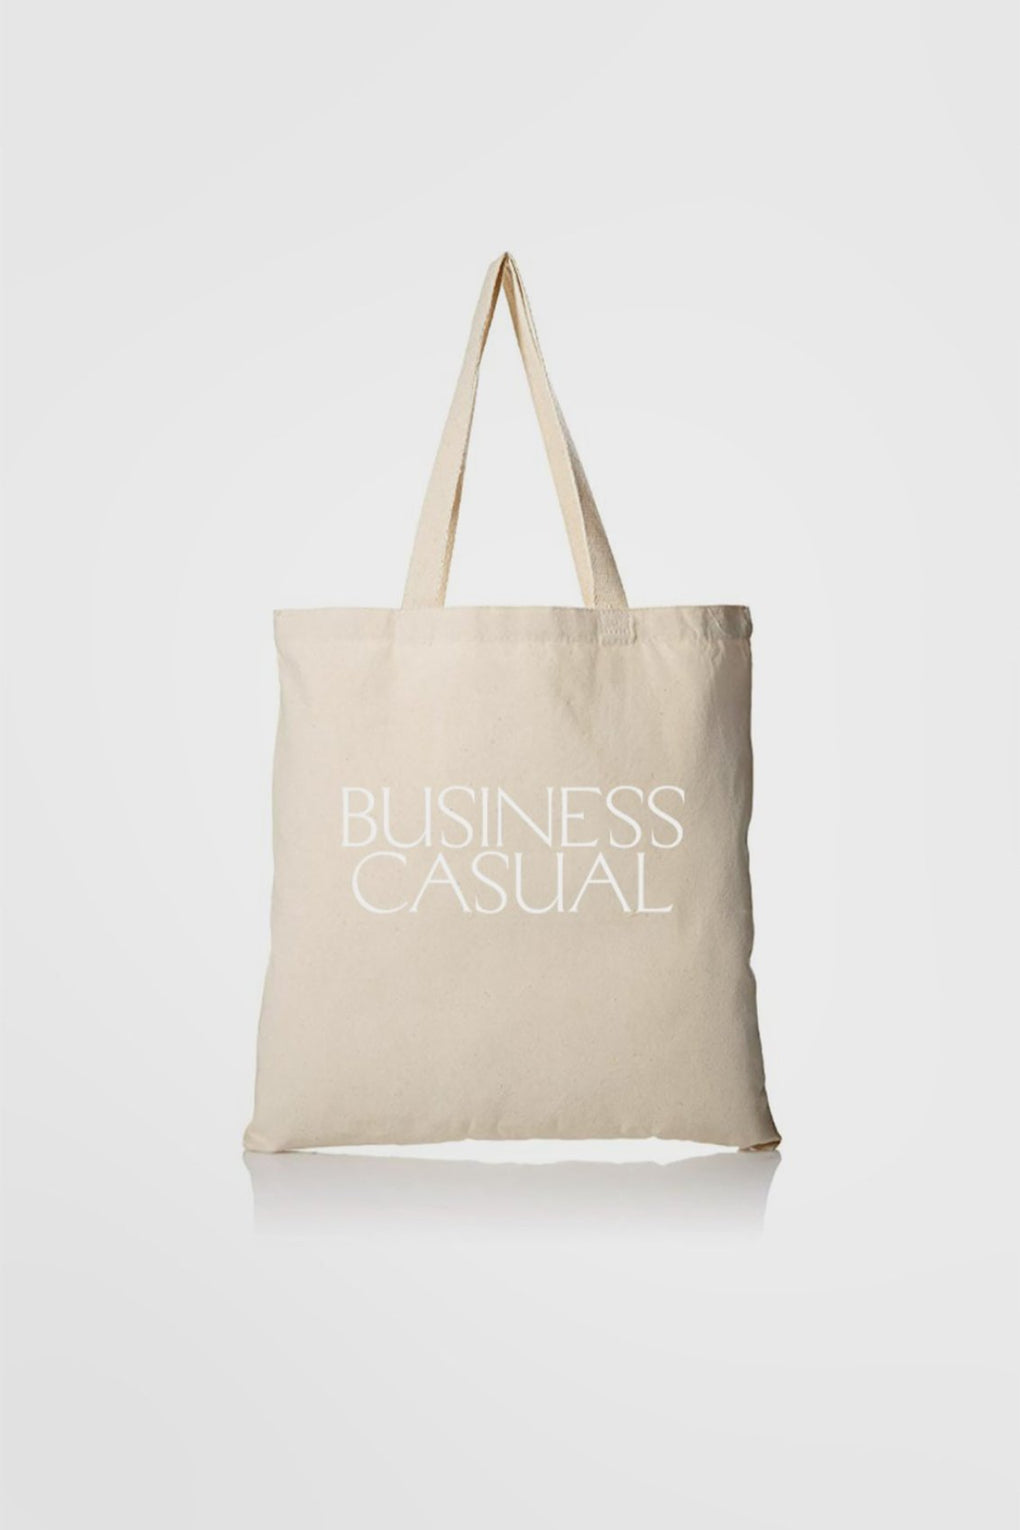 Business Casual Tote